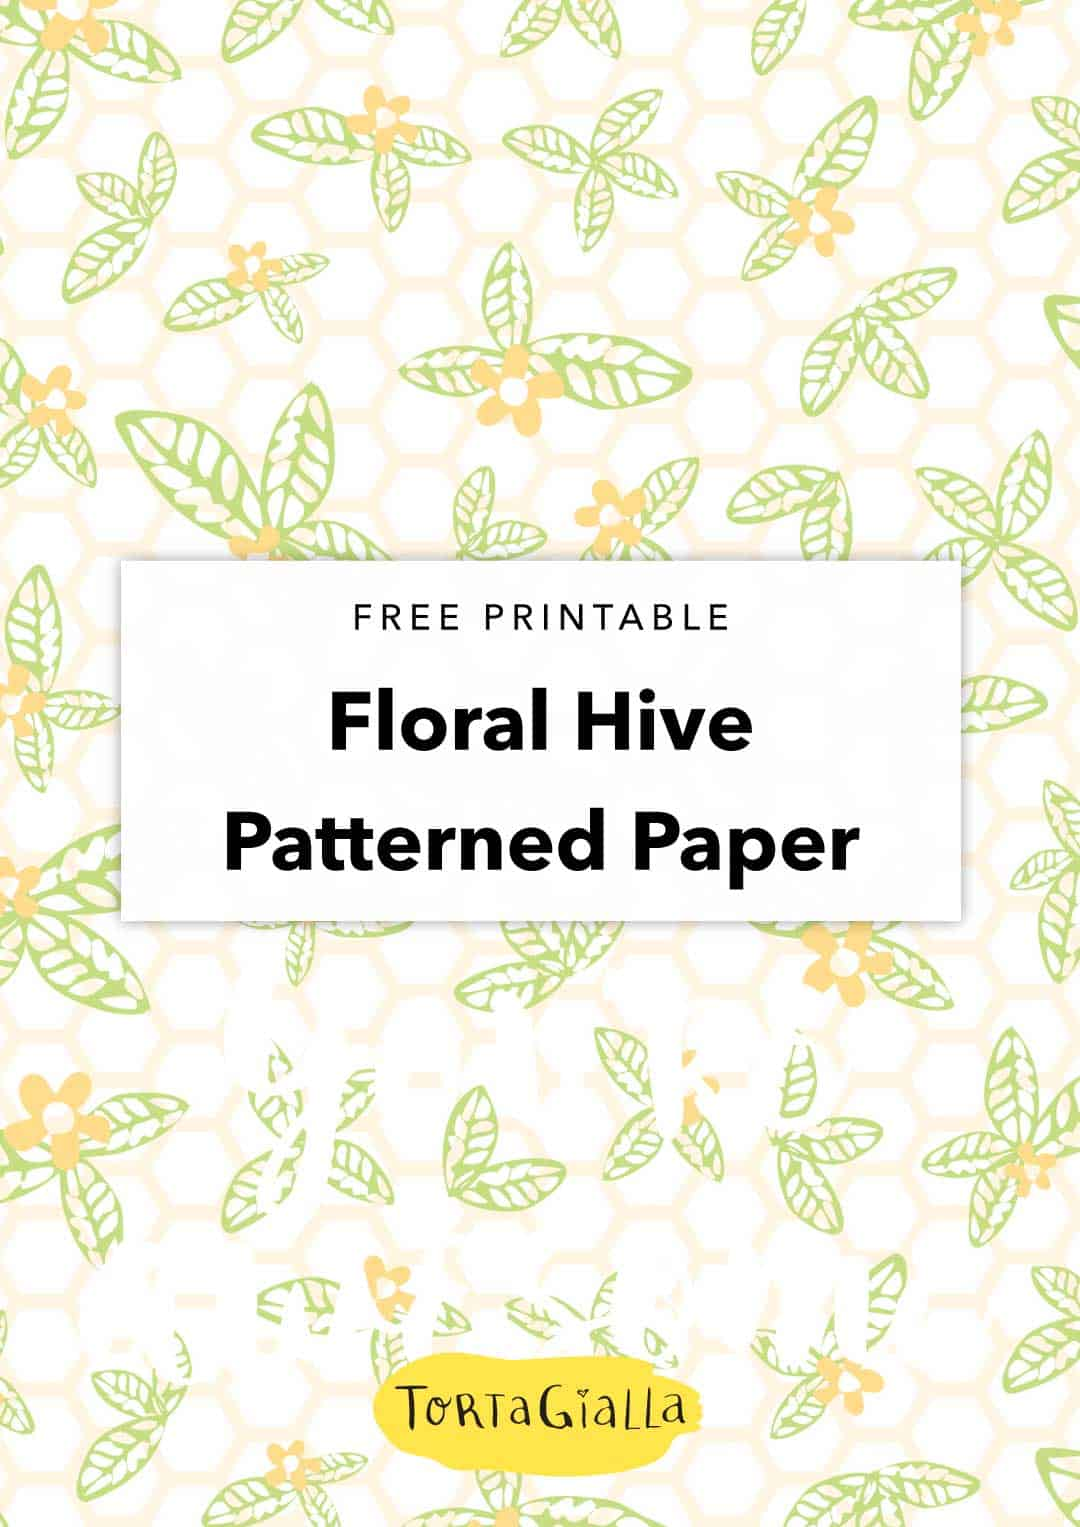 Looking for printable scrapbook paper pdf freebies? Download this happy floral honeycomb paper design for your papercrafting projects for free.